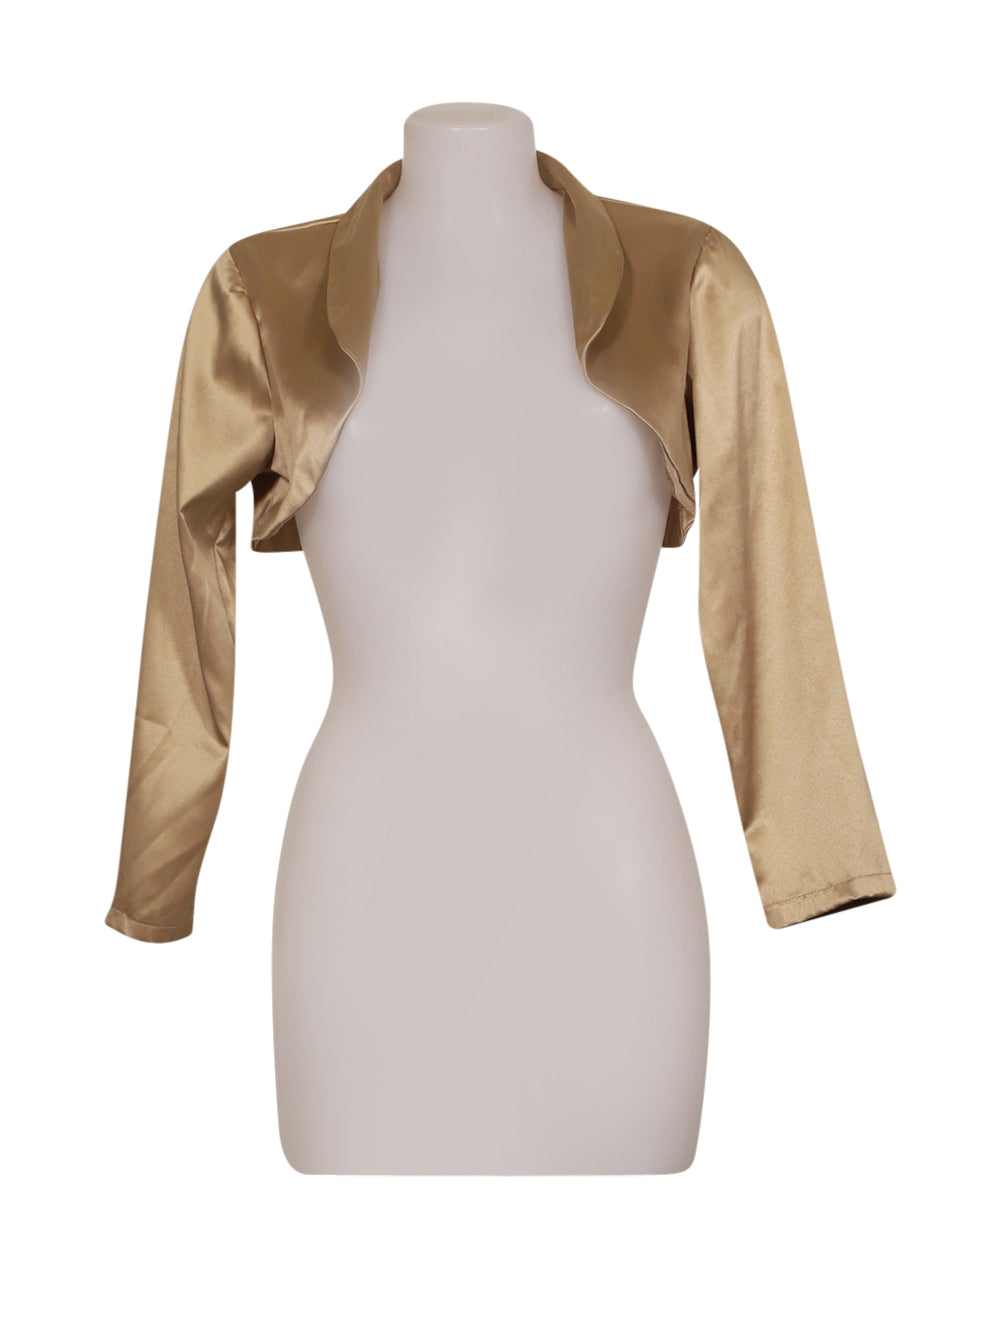 Front photo of Unworn victoriazone Beige Woman's bolero - size 12/L